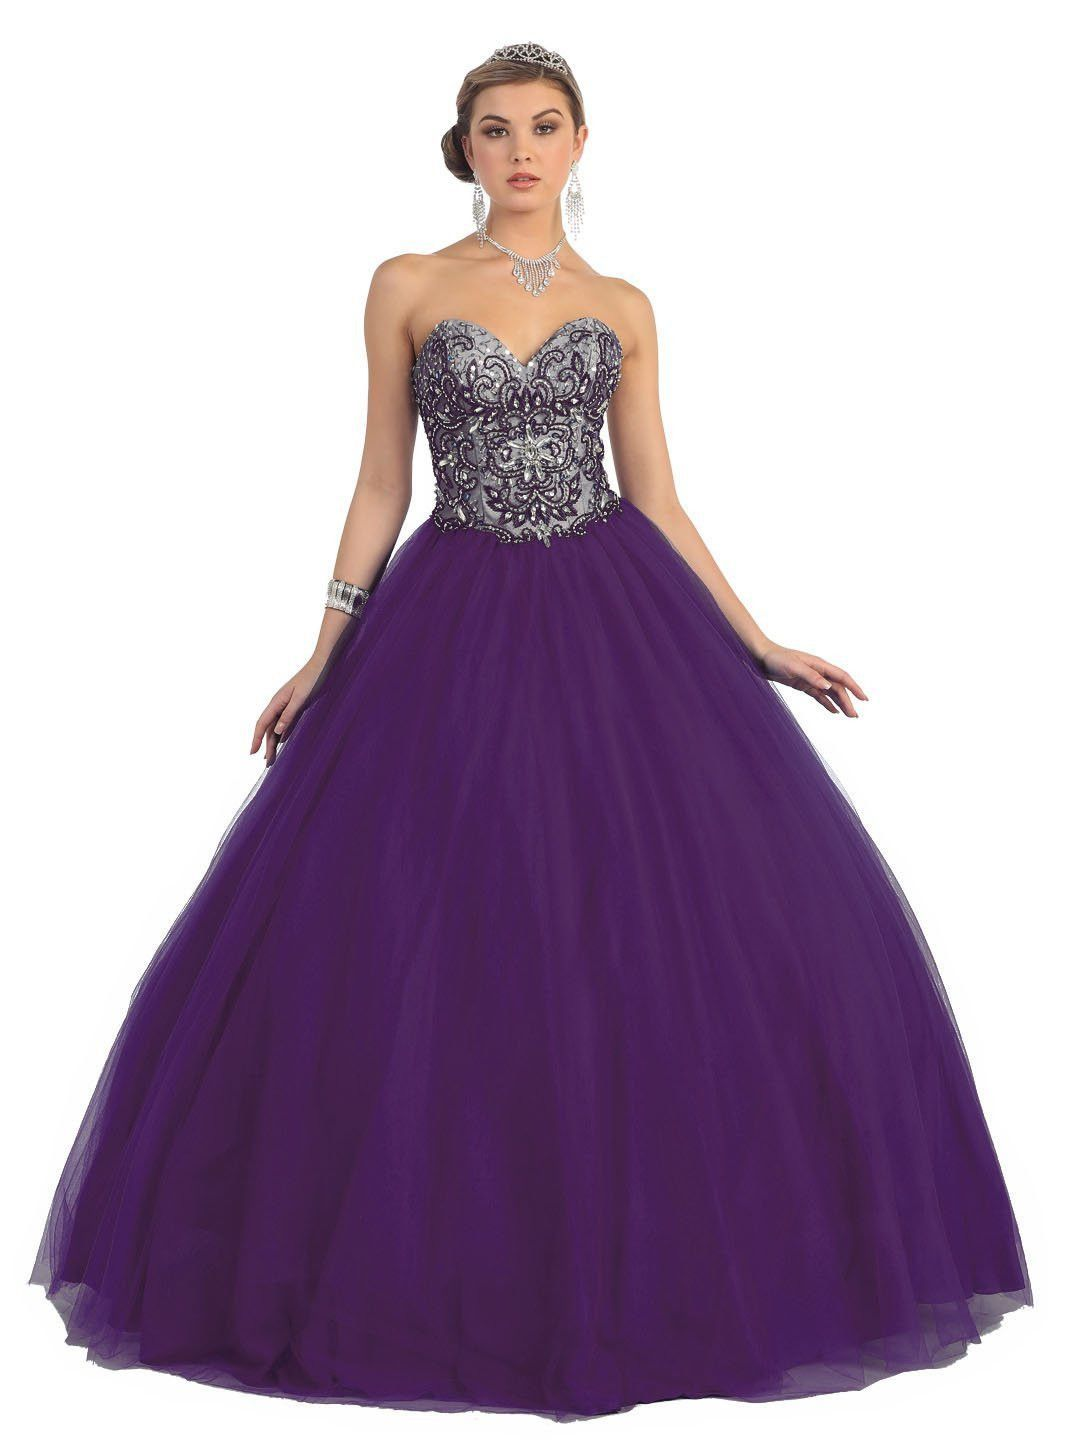 Quinceanera Ball Gown Plus Size Prom Long Dress | Prom long, Ball ...